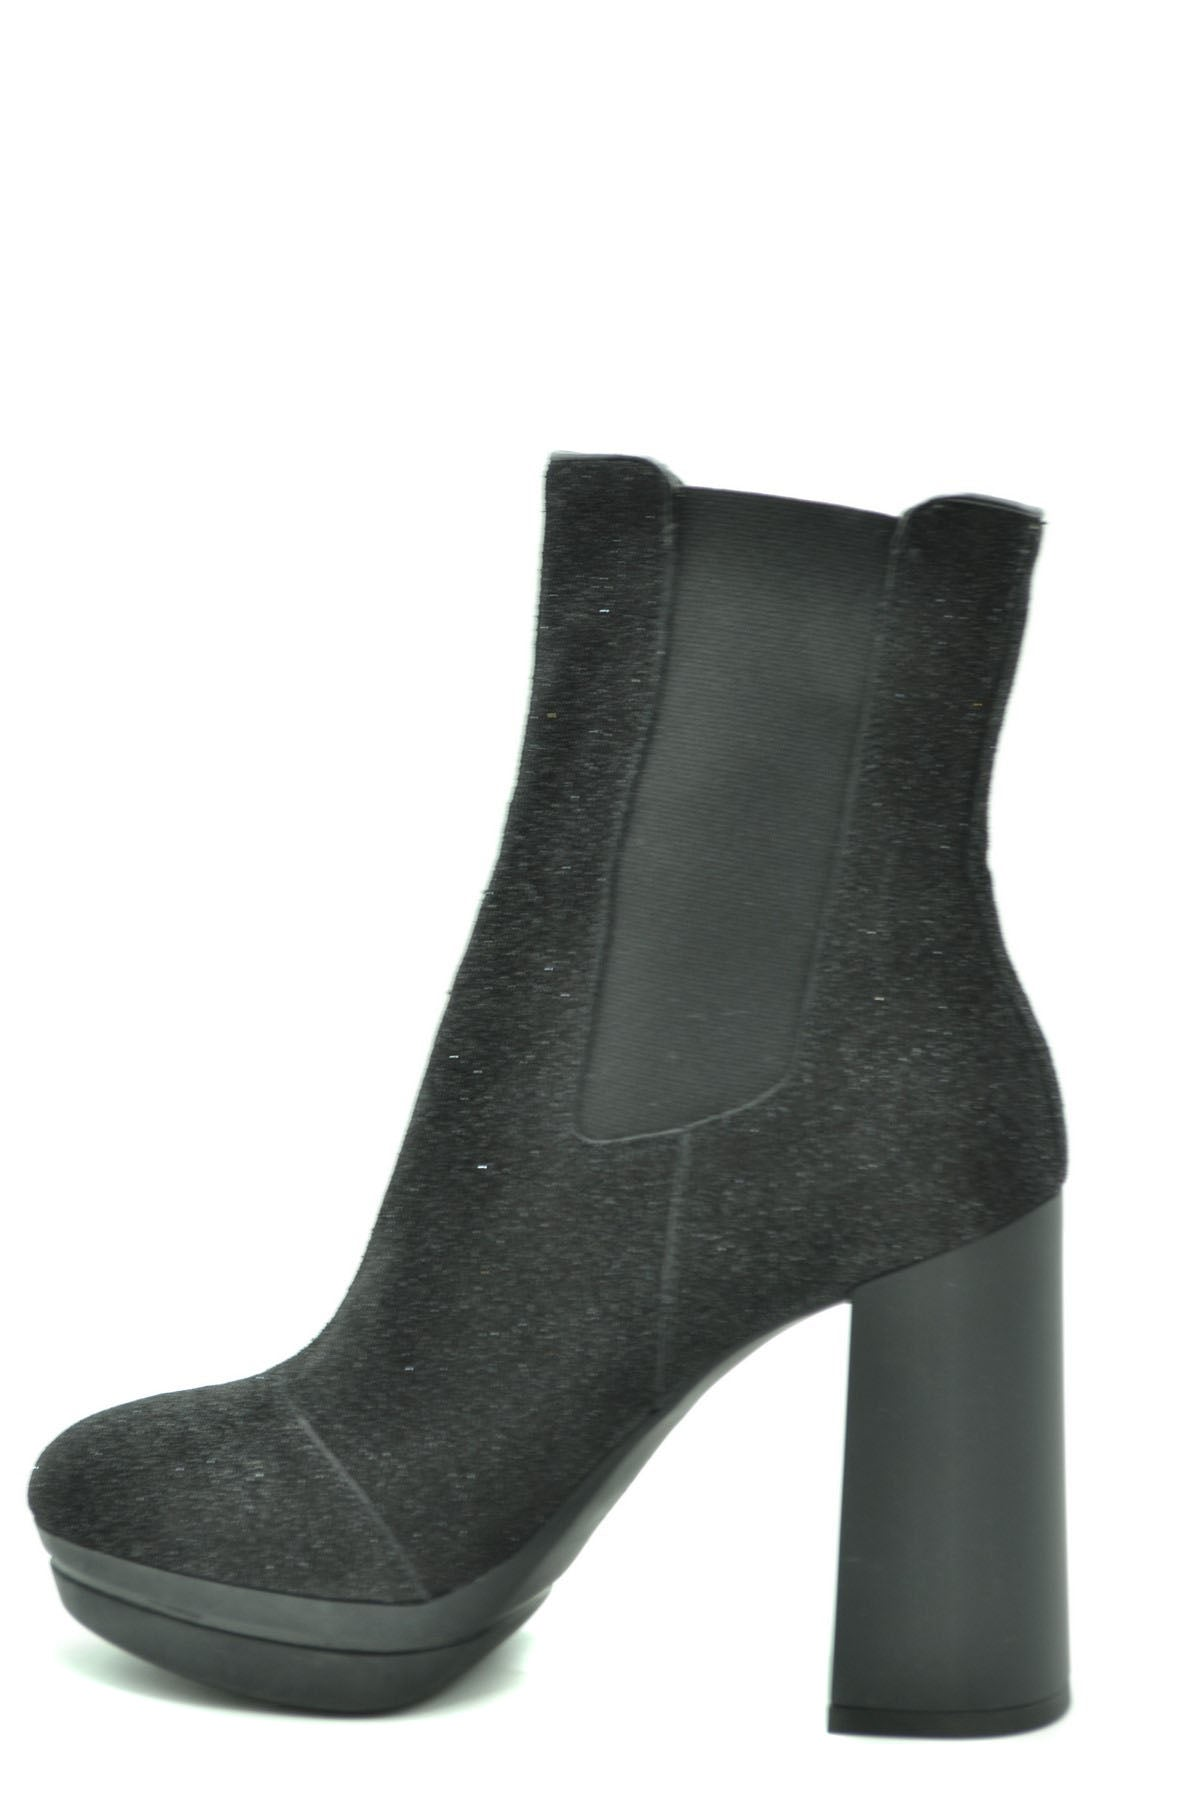 Shoes Hogan-Women's Fashion - Women's Shoes - Women's Boots-Product Details Terms: New With LabelMain Color: BlackType Of Accessory: BootsSeason: Fall / WinterMade In: ItalyGender: WomanHeel'S Height: 11Size: EuComposition: Leather 100%Year: 2020Manufacturer Part Number: Hxw3910Au80P0Fb999-Keyomi-Sook